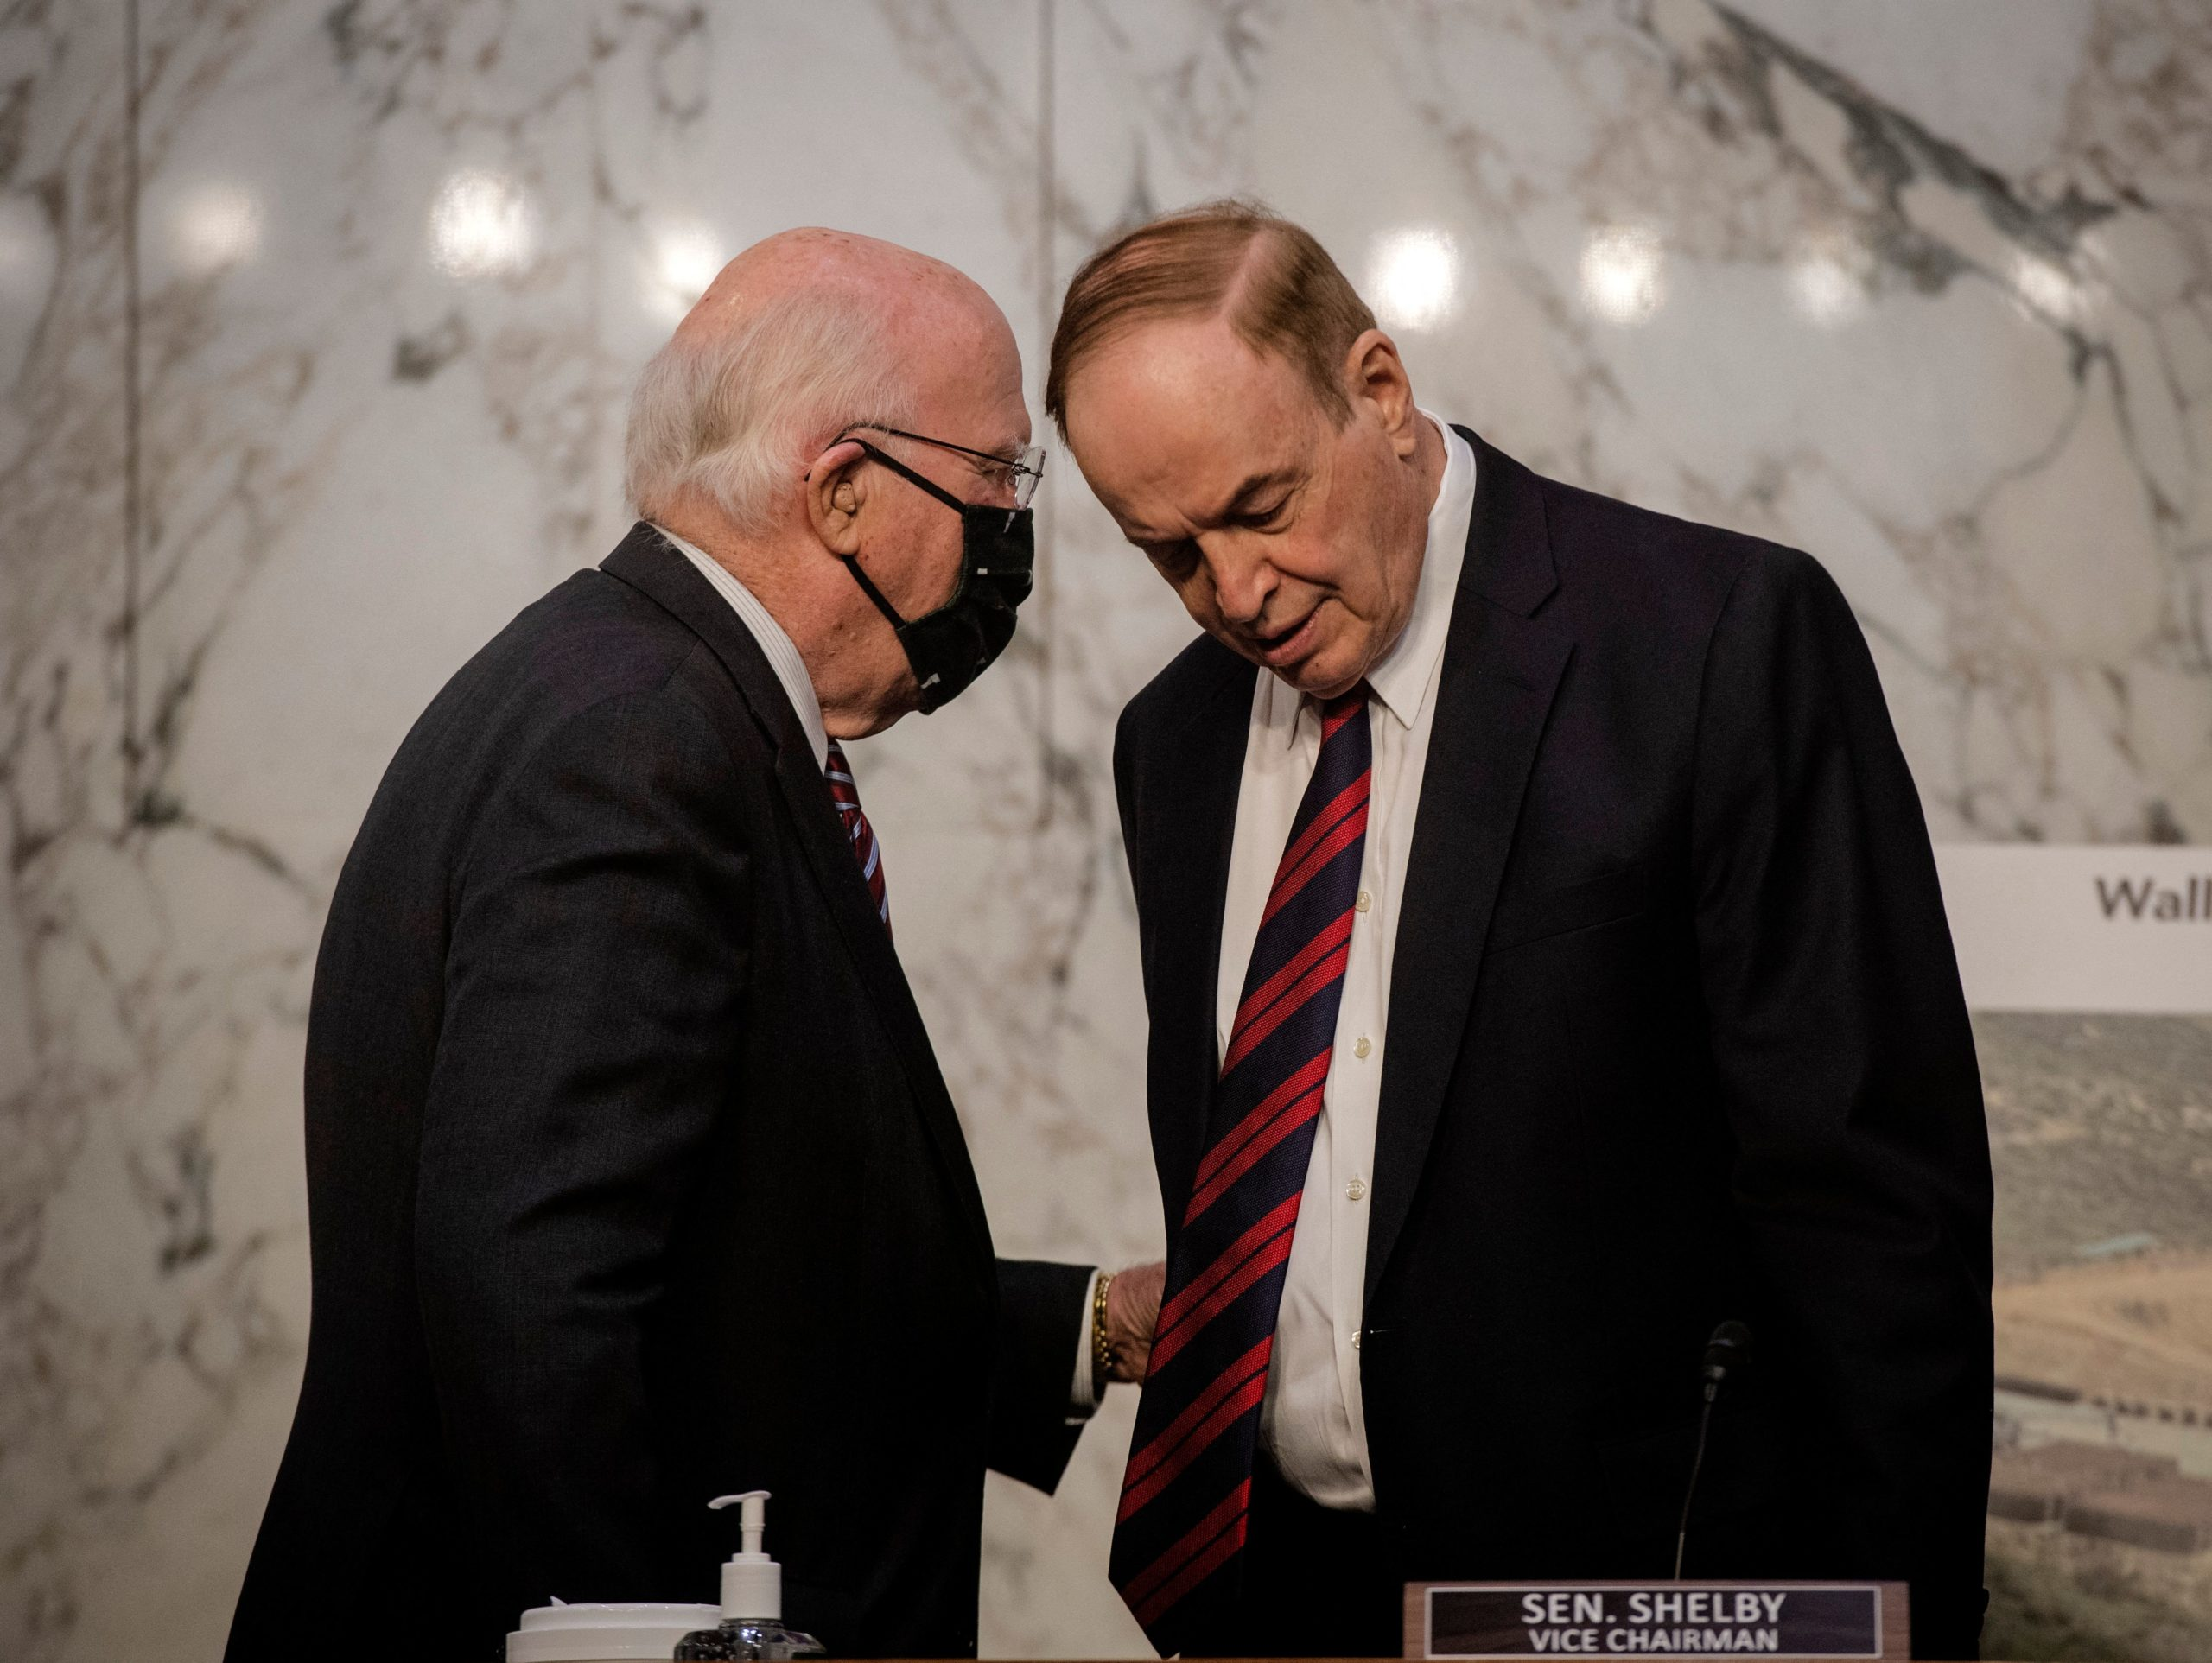 Sen. Patrick Leahy talks with Sen. Richard Shelby before a Senate Appropriations Committee hearing in May. (BILL O'LEARY/POOL/AFP via Getty Images)